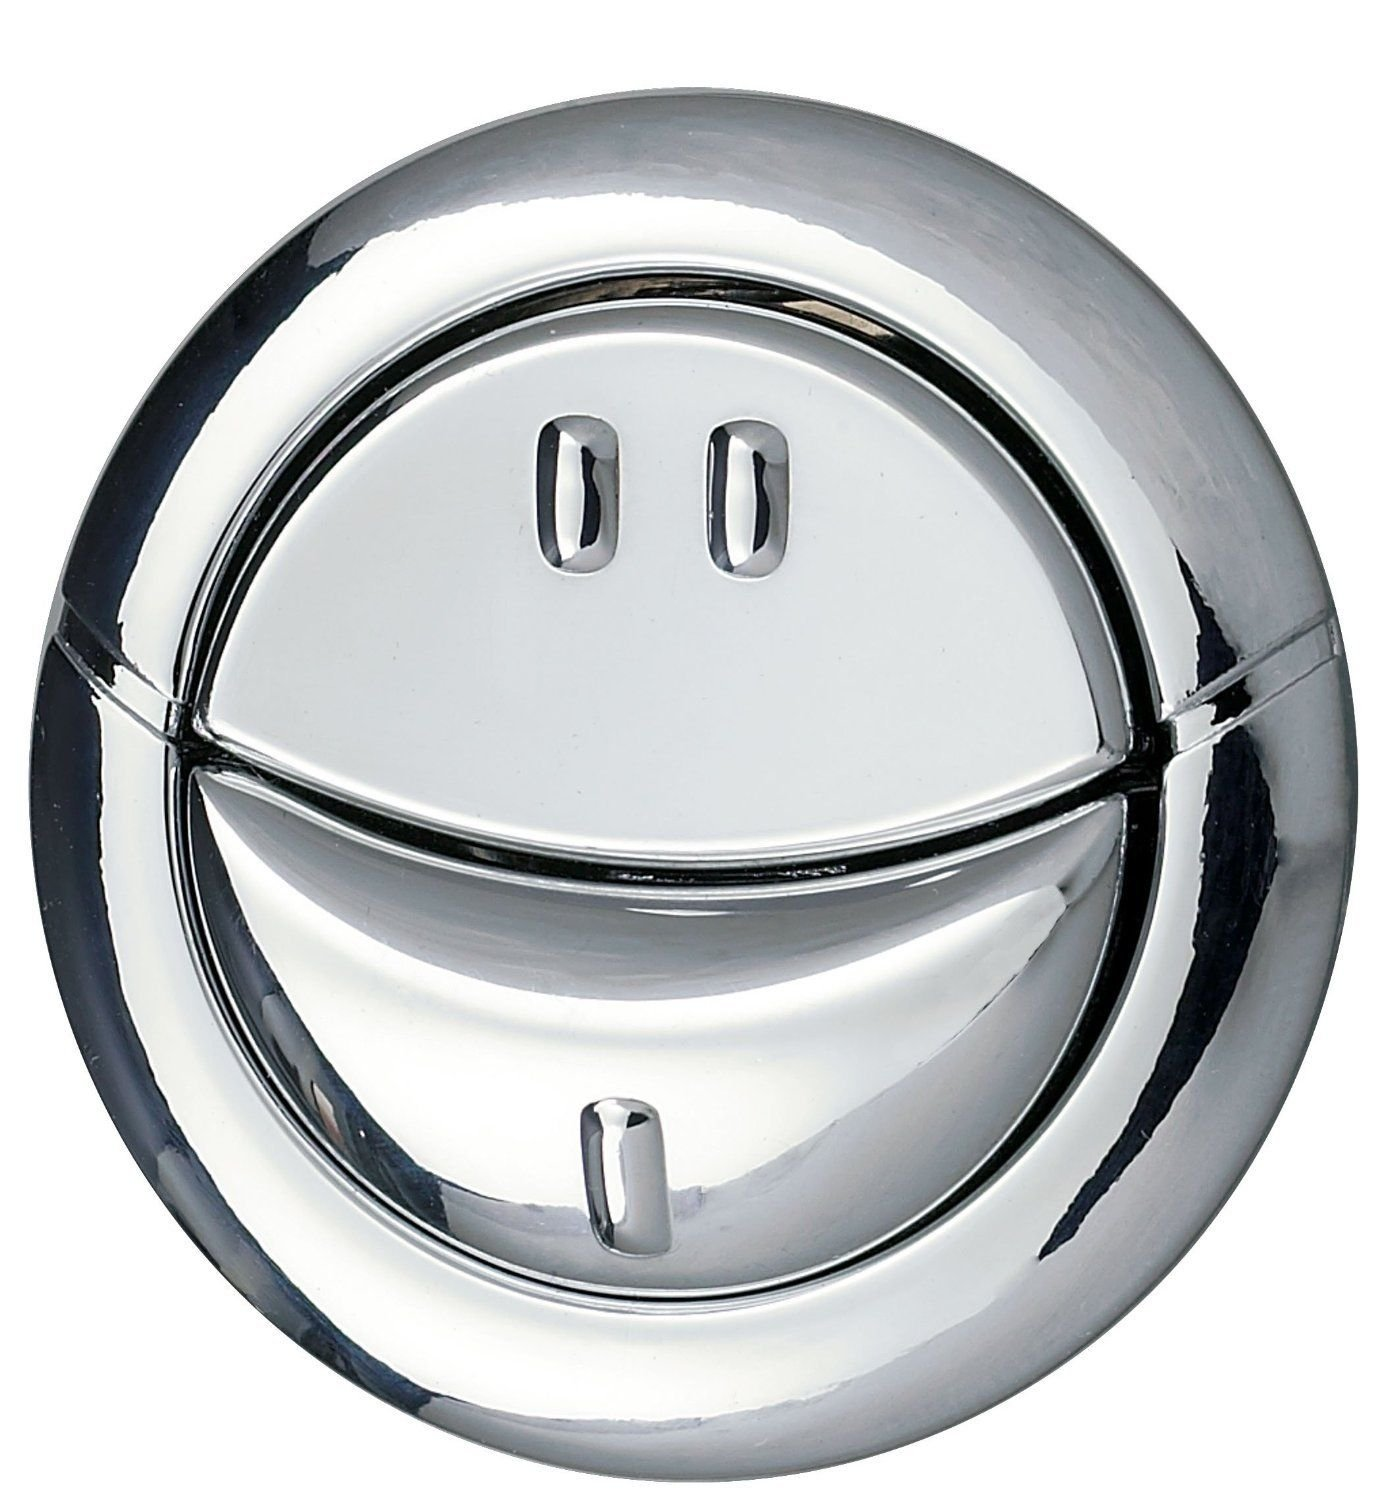 Wirquin Pro Dual Flush Toilet Cistern Button - Push Button Jollyflush Chrome Finish Replacement Wirquinn